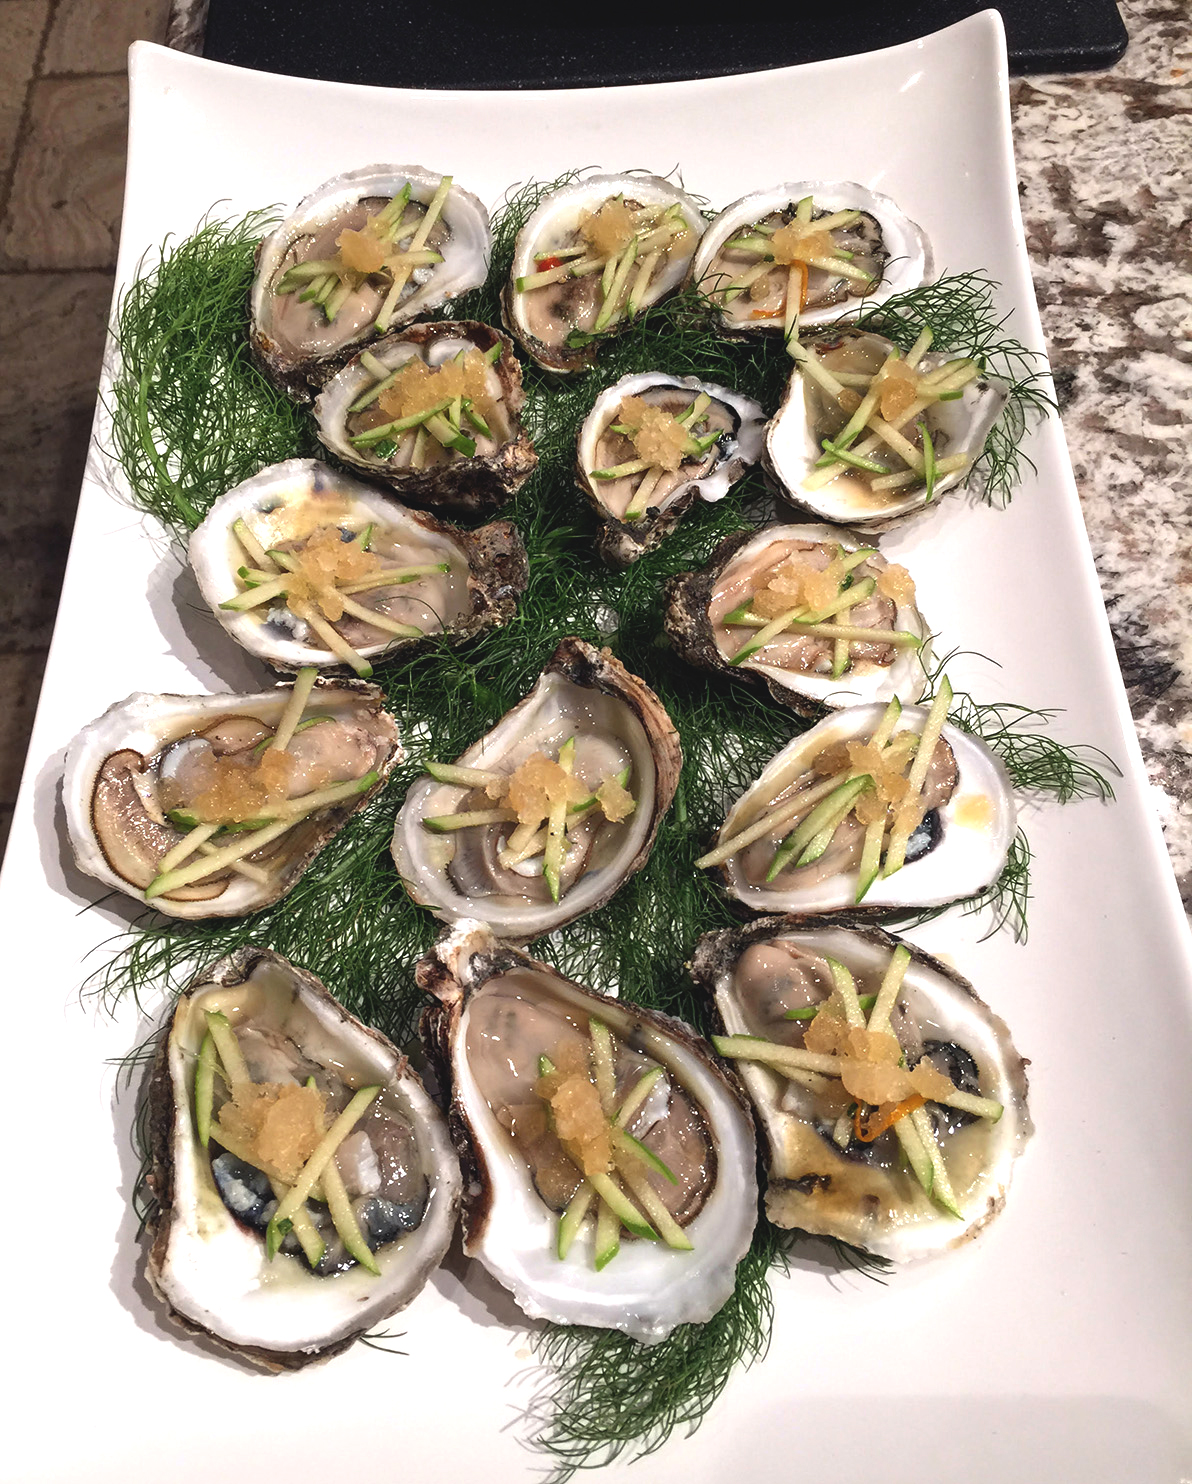 Personal chef park city apples oysters